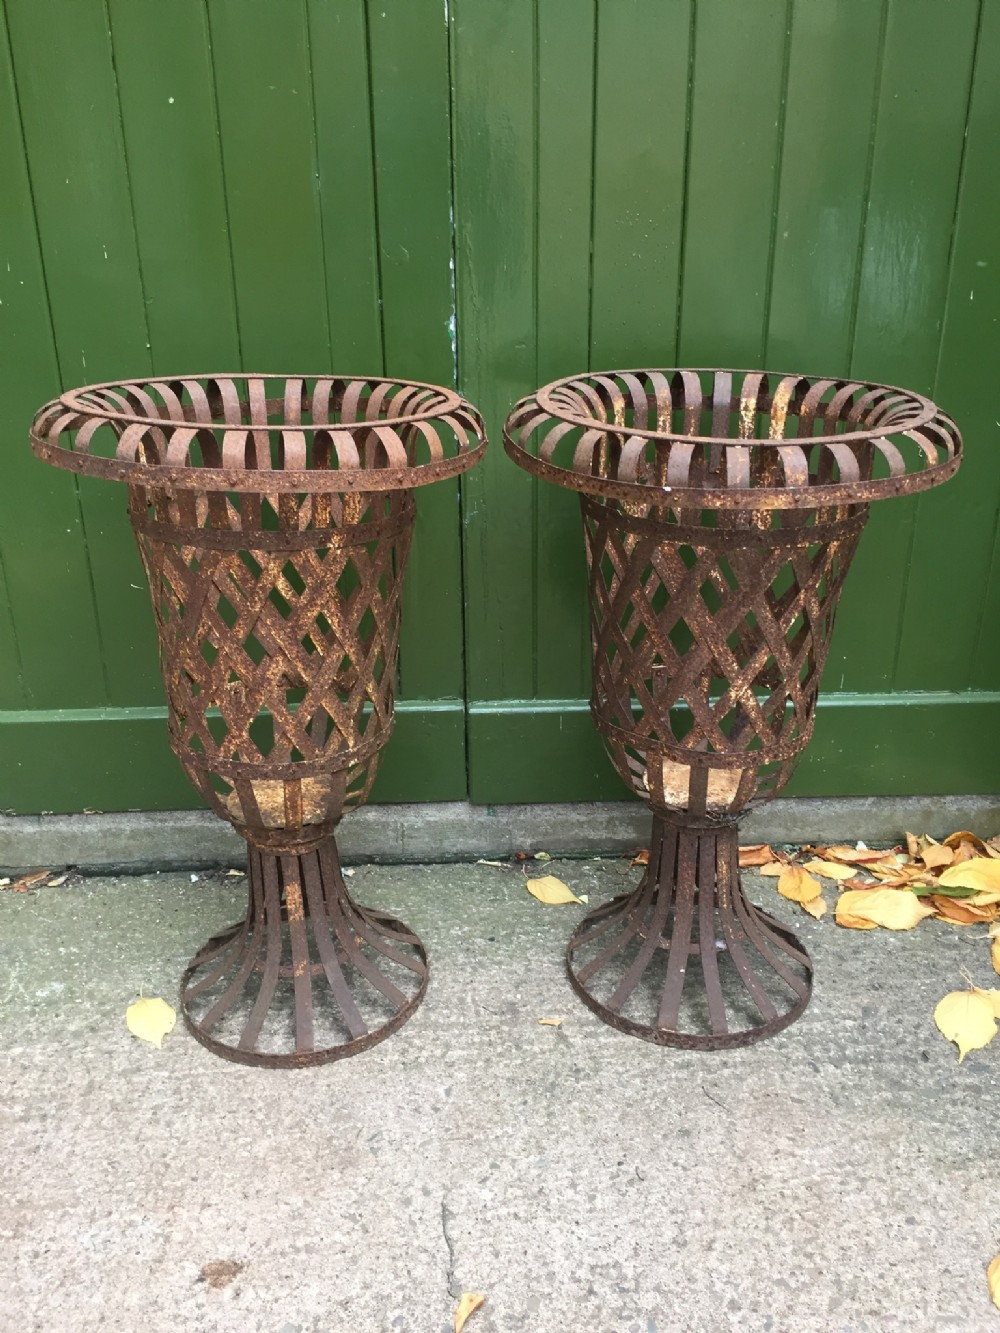 decorative pair of early c20th french strapiron open latticework garden vases of campana form